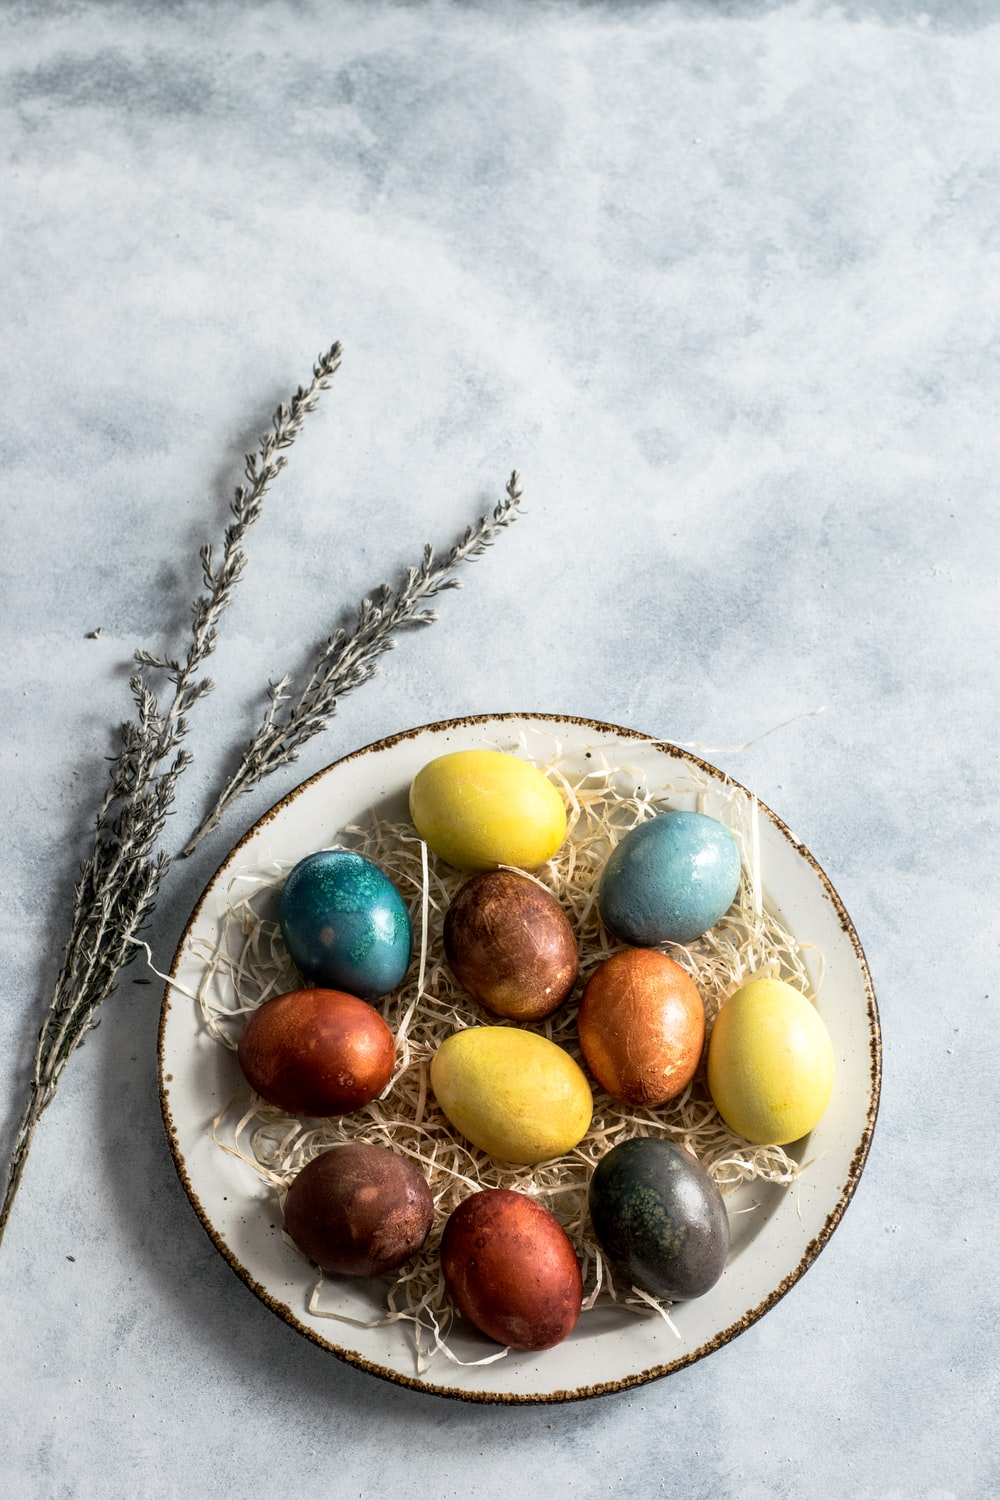 100 easter pictures 2018 download free images on unsplash